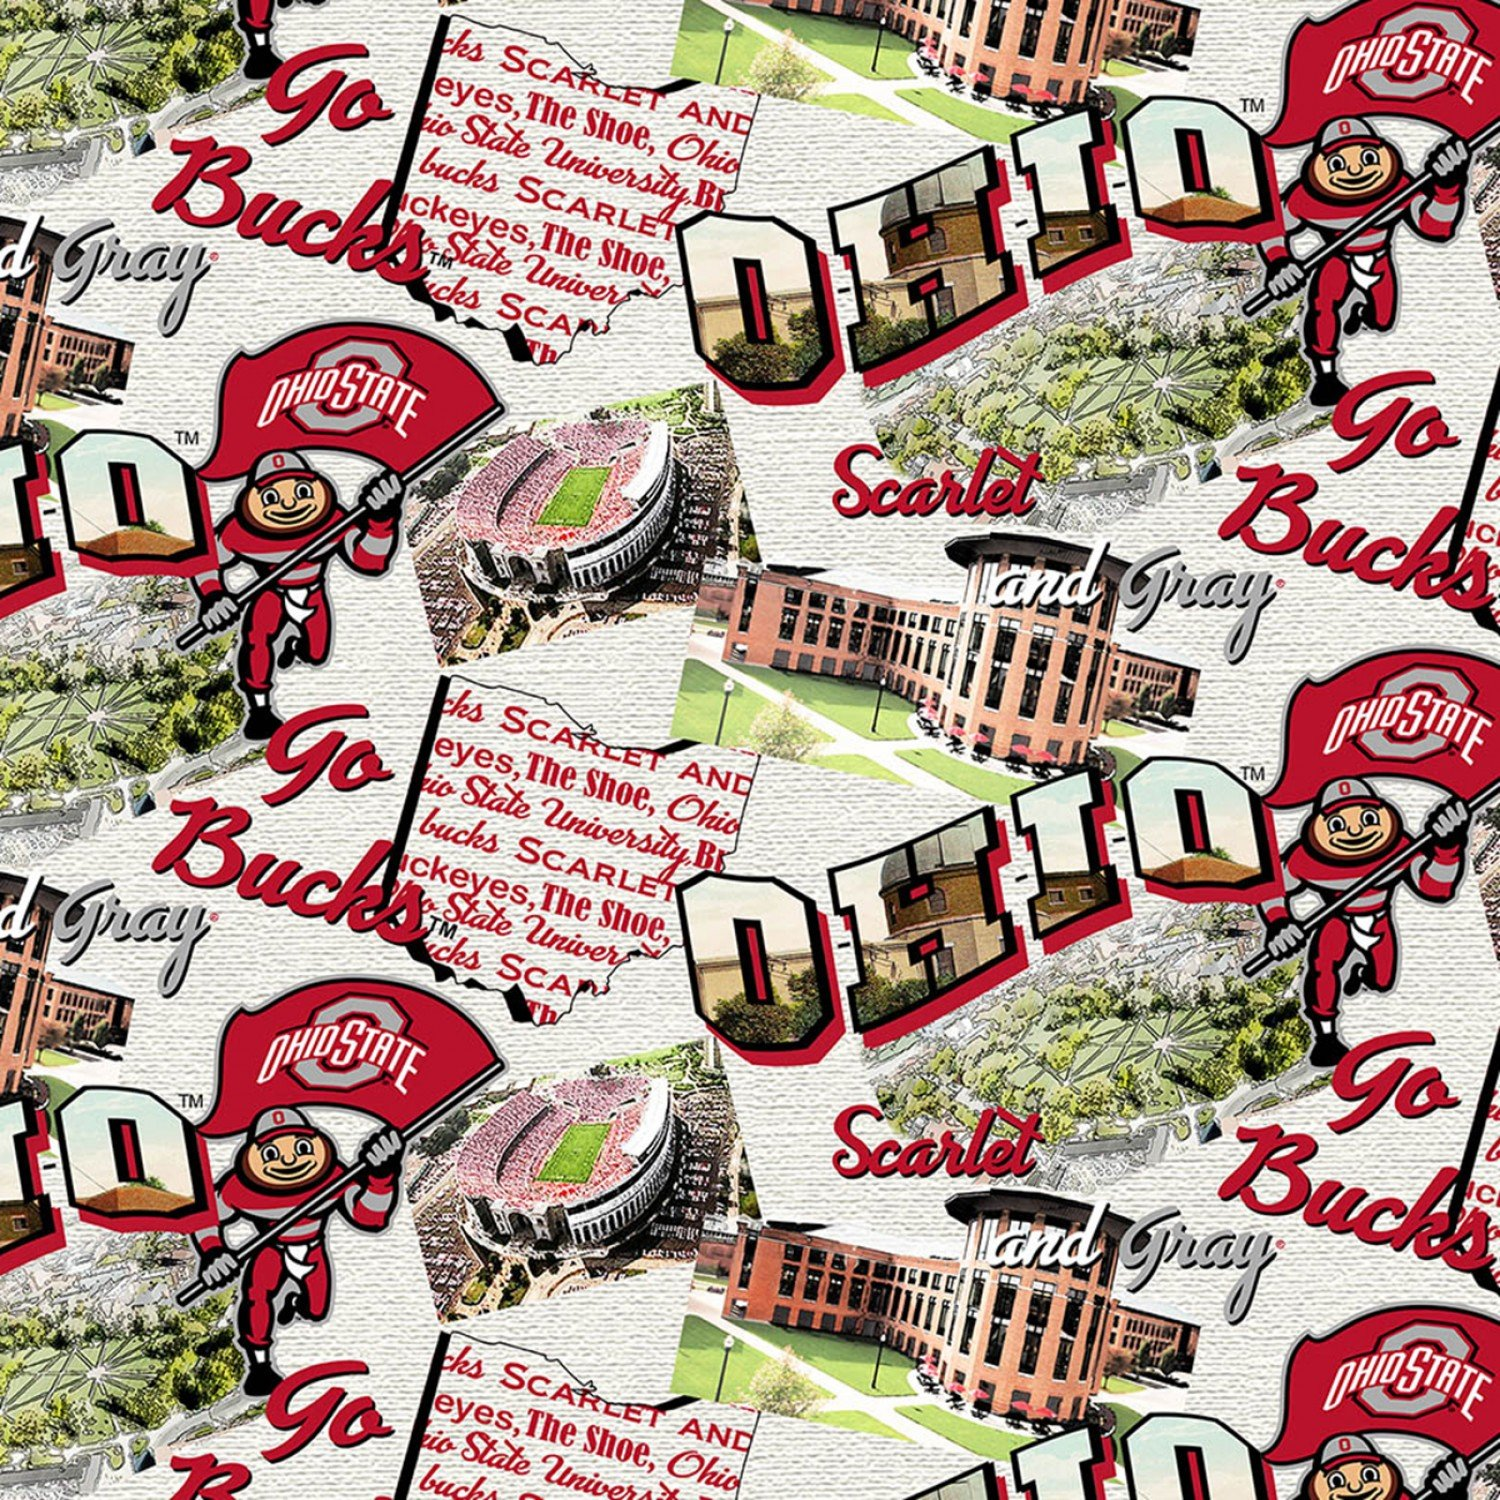 OHS-1212 Ohio State Buckeyes Scenic Map